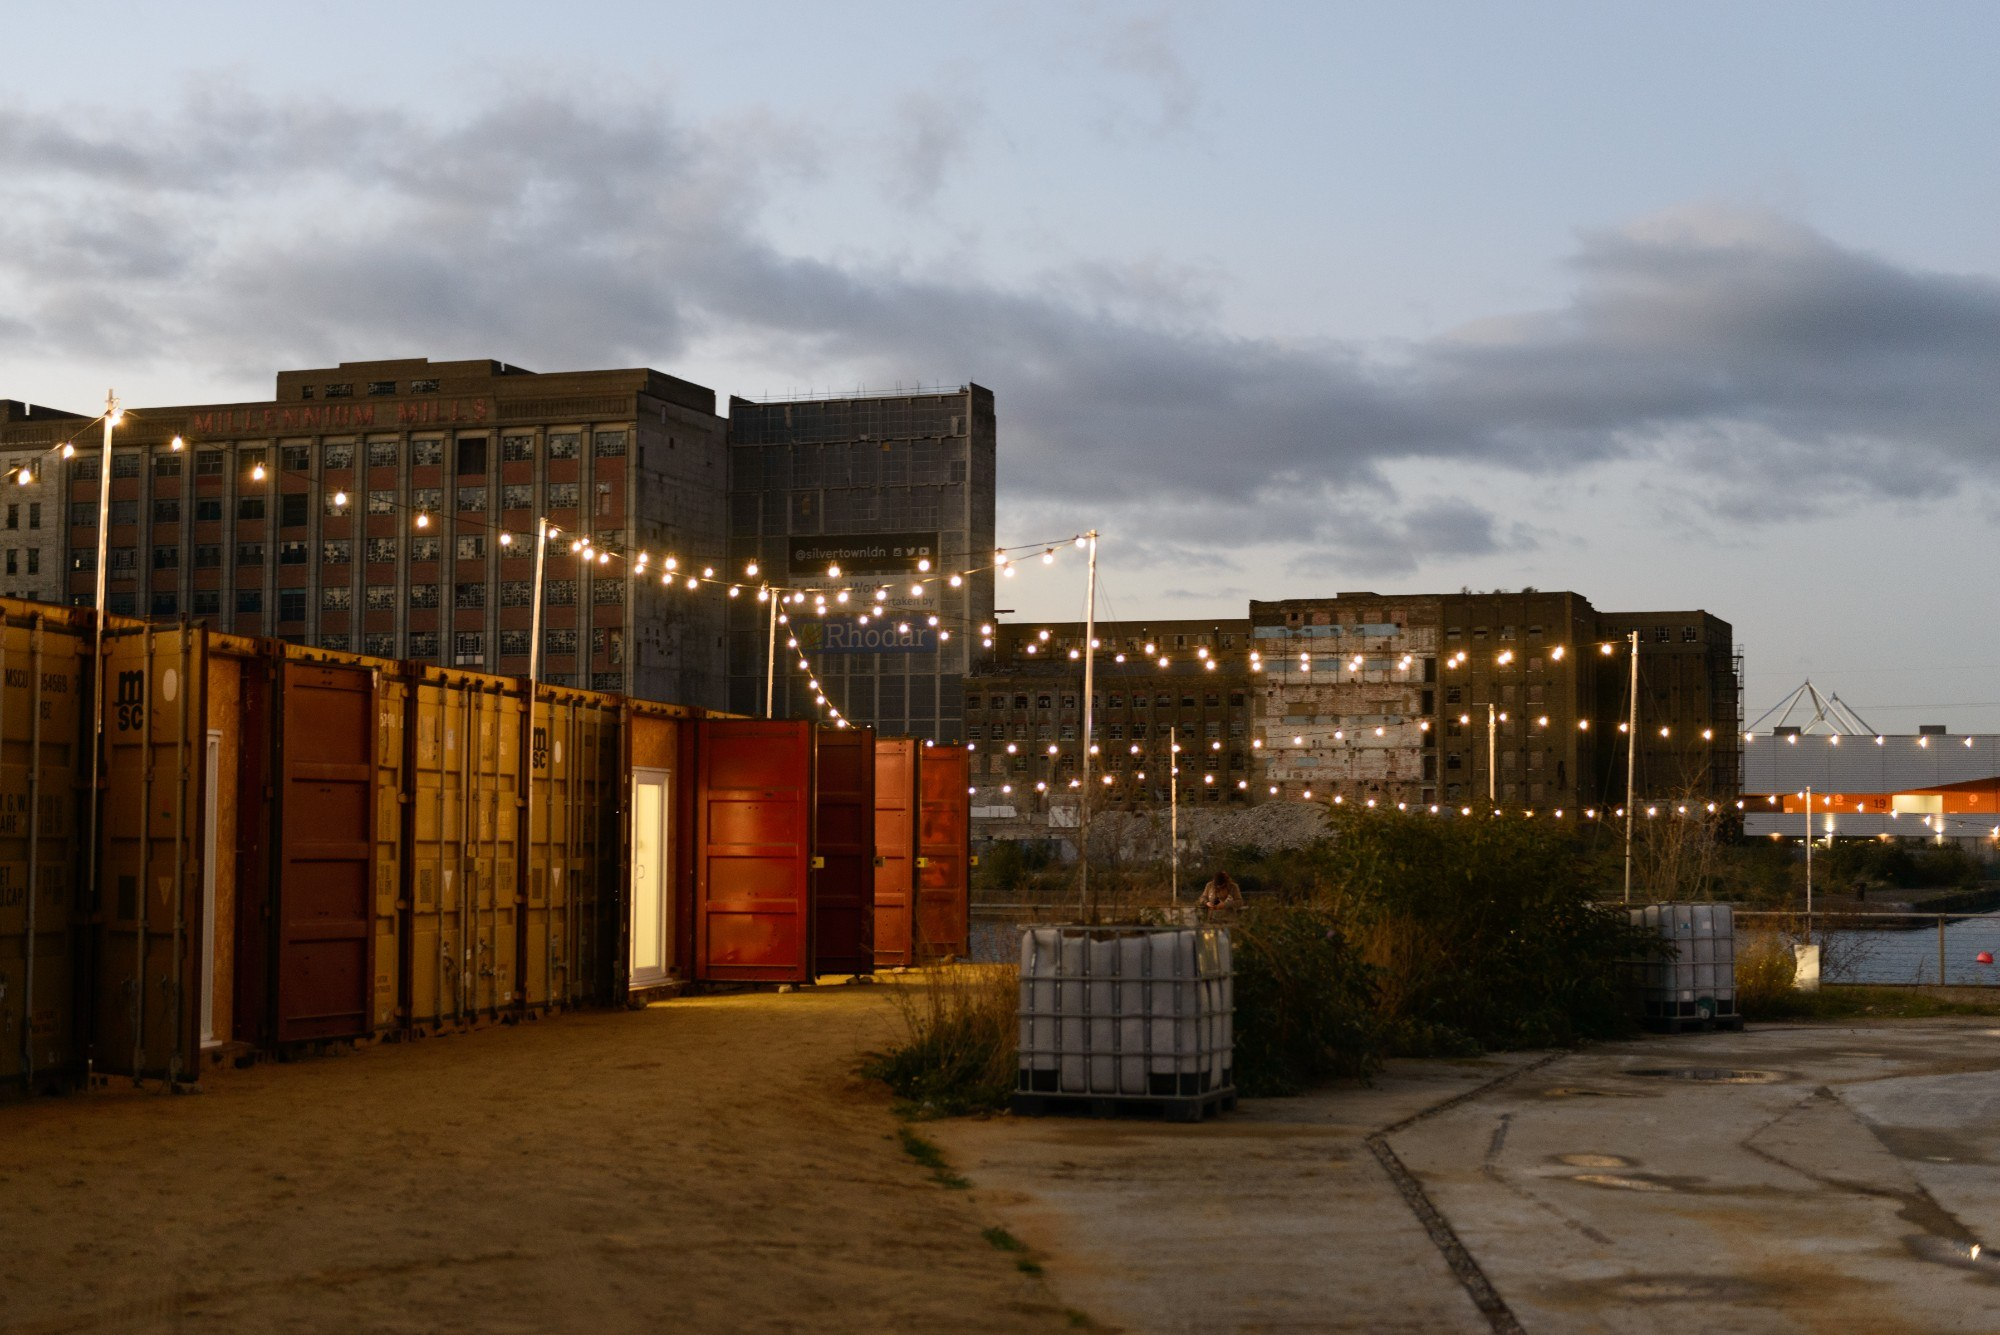 Shipping containers decorated with fairy lights